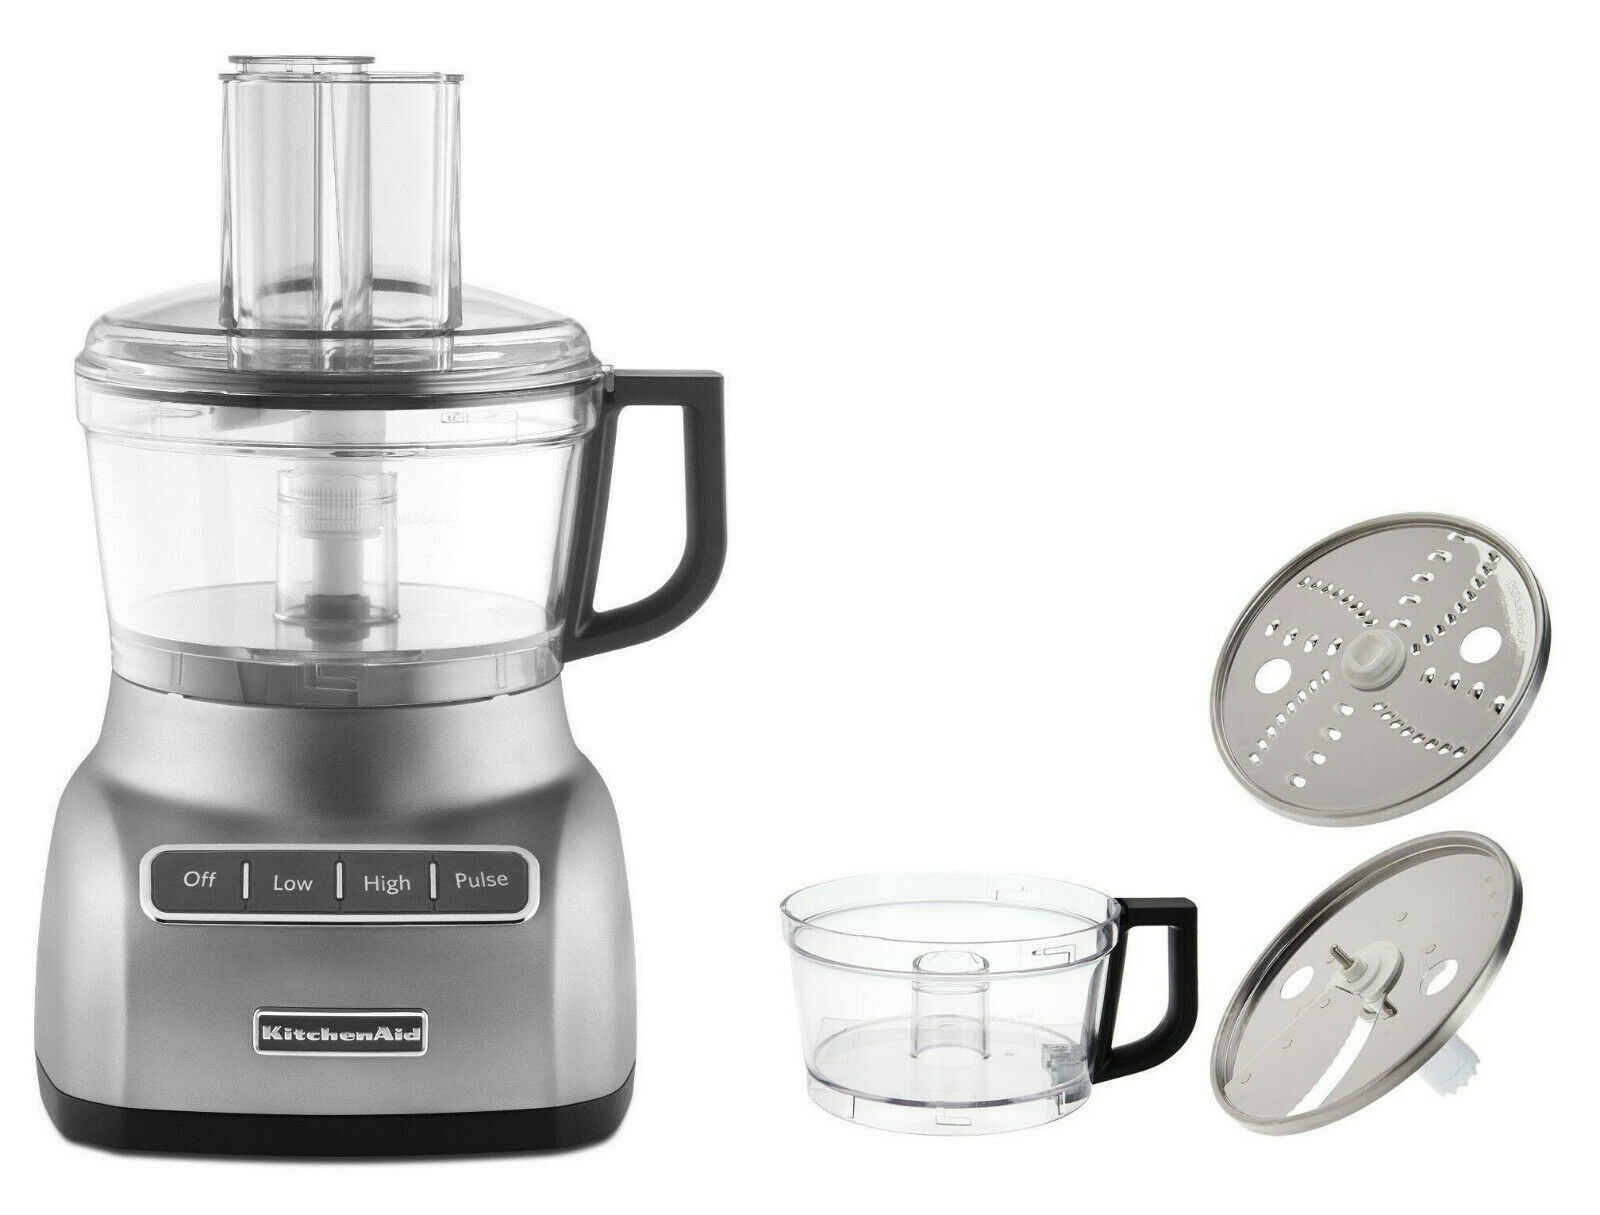 KitchenAid KFP0711CU 7-Cup Exact Slice Food Processor contour argent